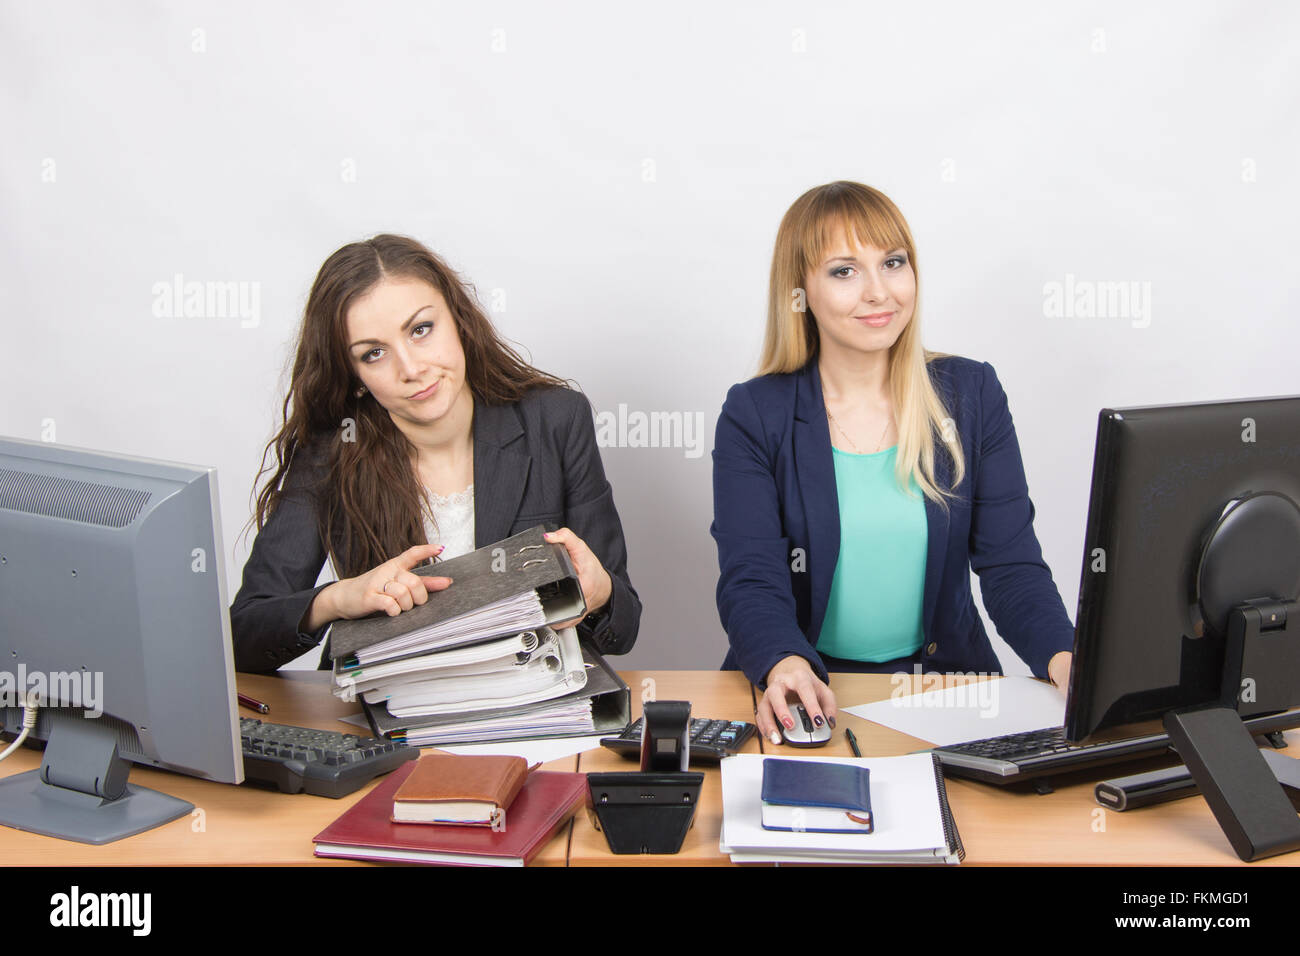 Female colleagues in the office, one littered with paper documents, the second sitting with a blank sheet of paper - Stock Image